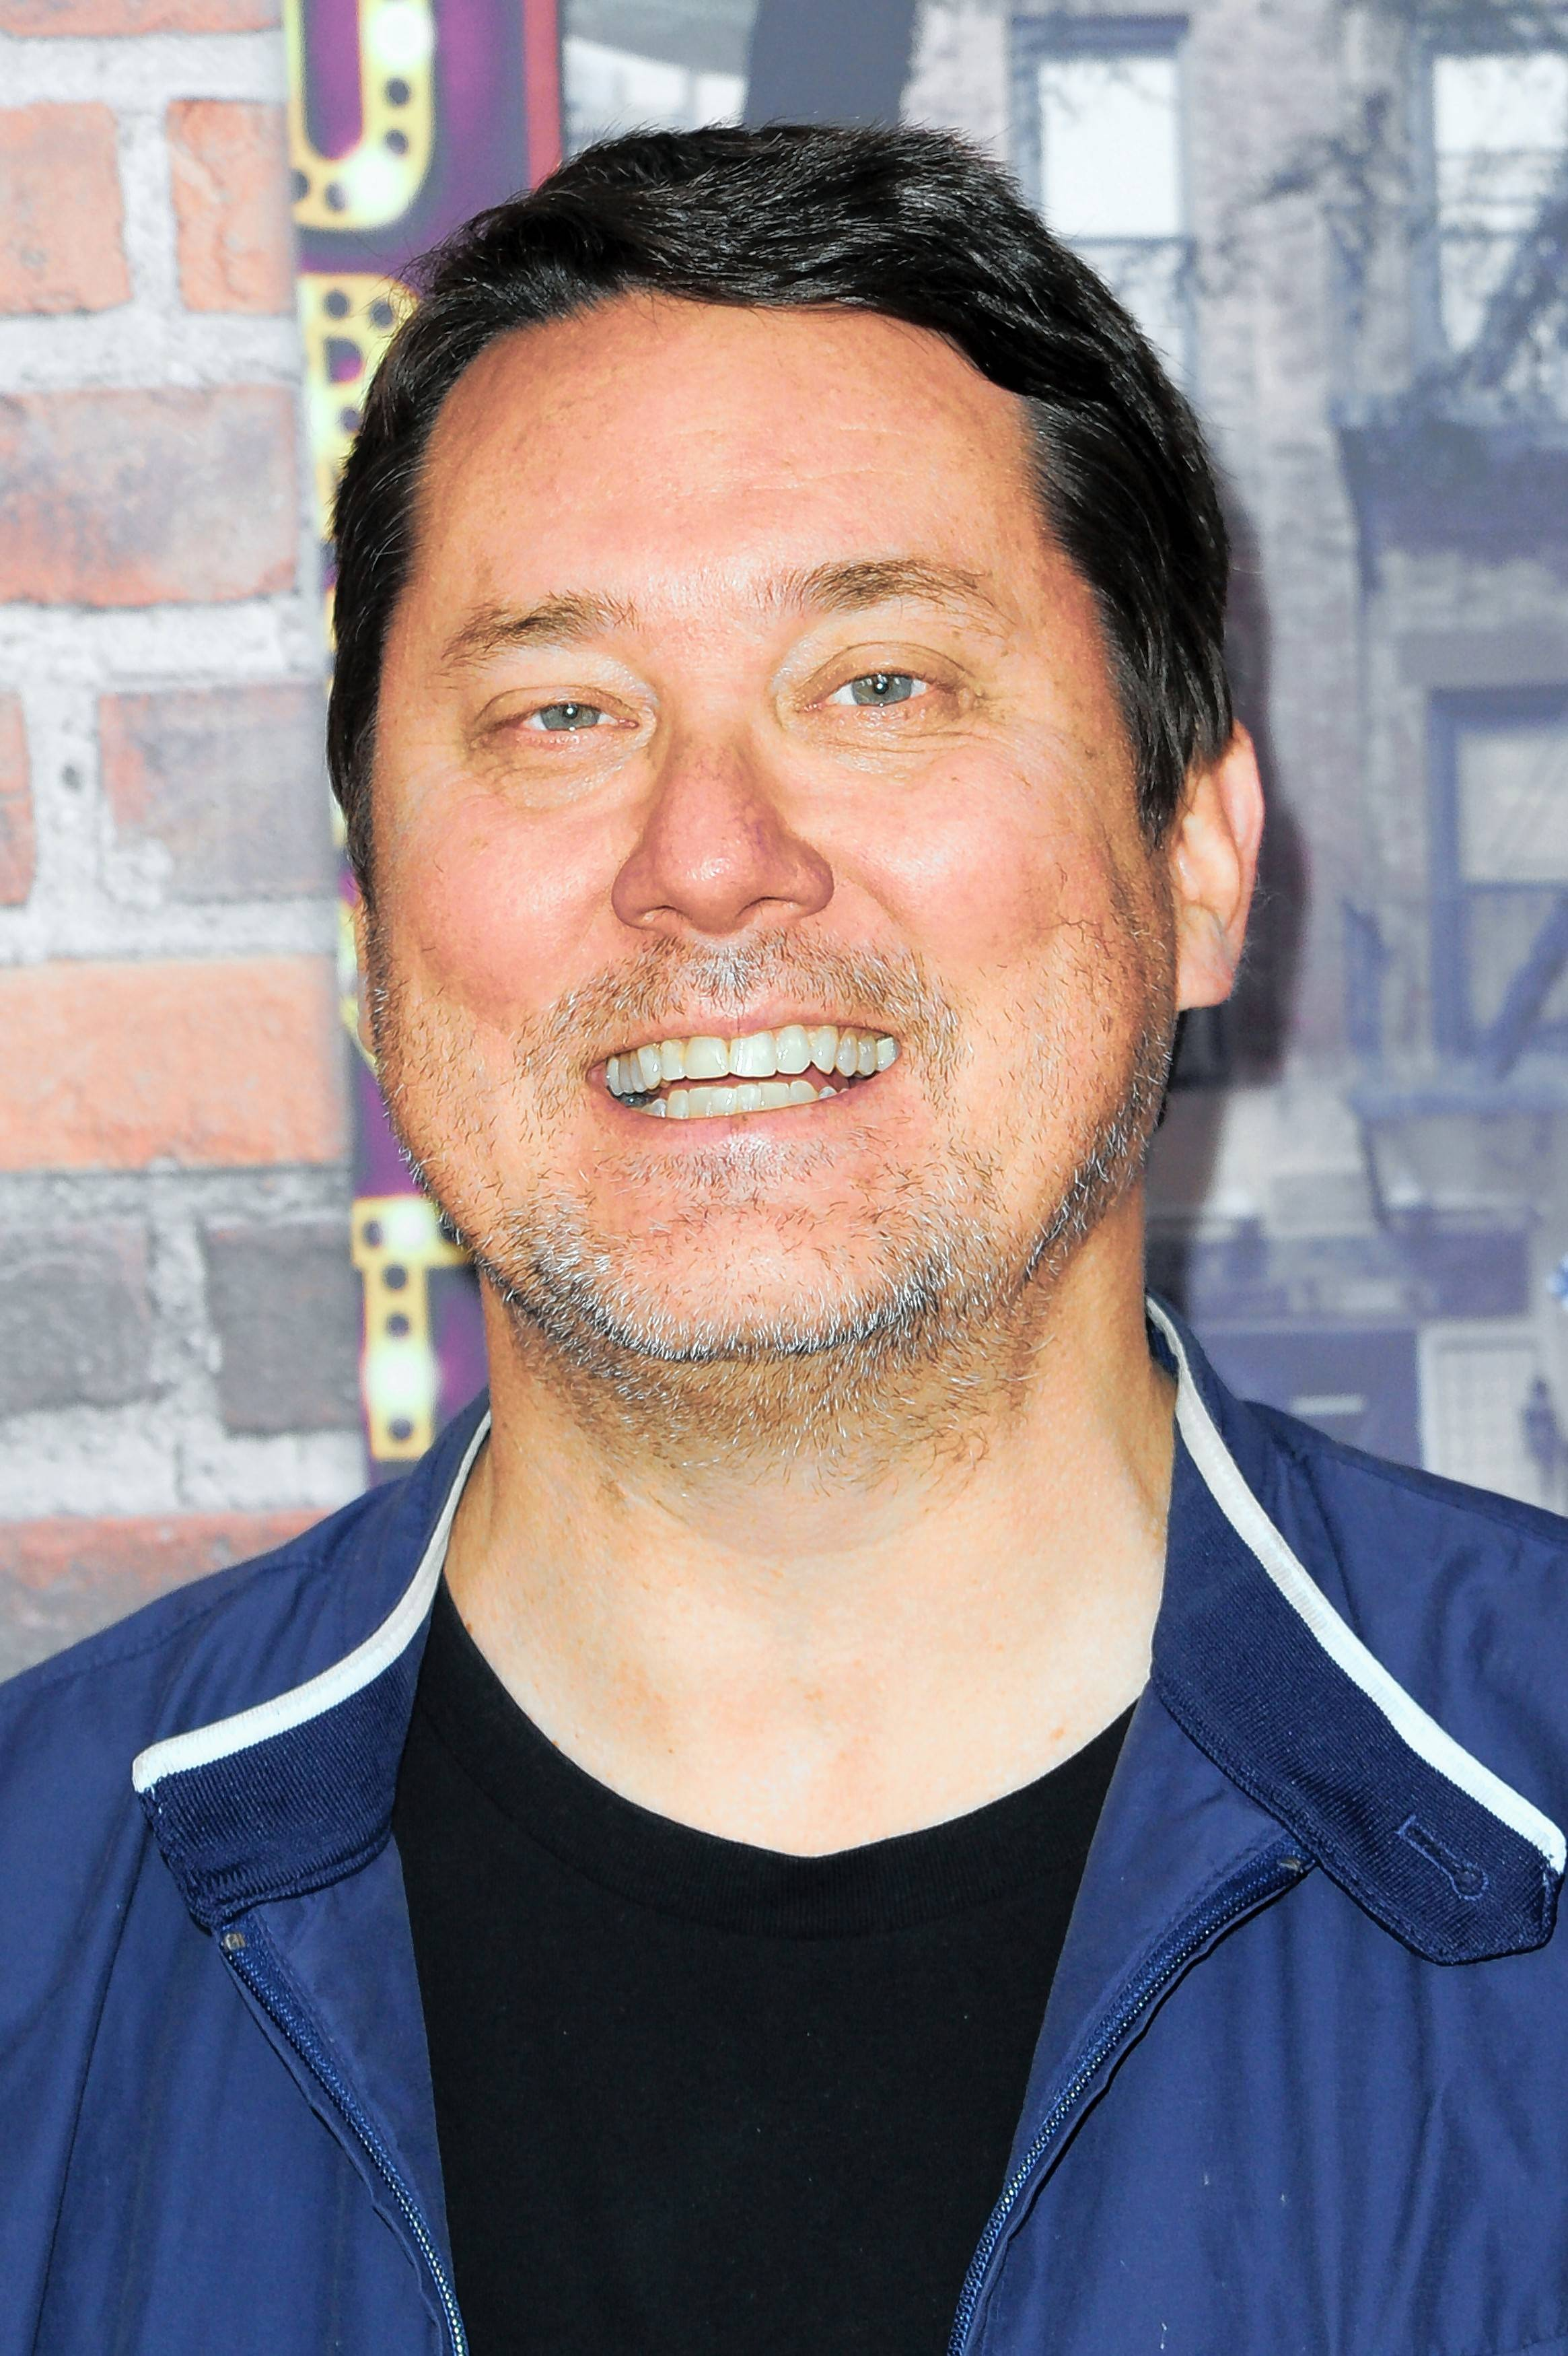 Comedian Doug Benson returns to perform at Zanies locations in Rosemont and Chicago in early May.